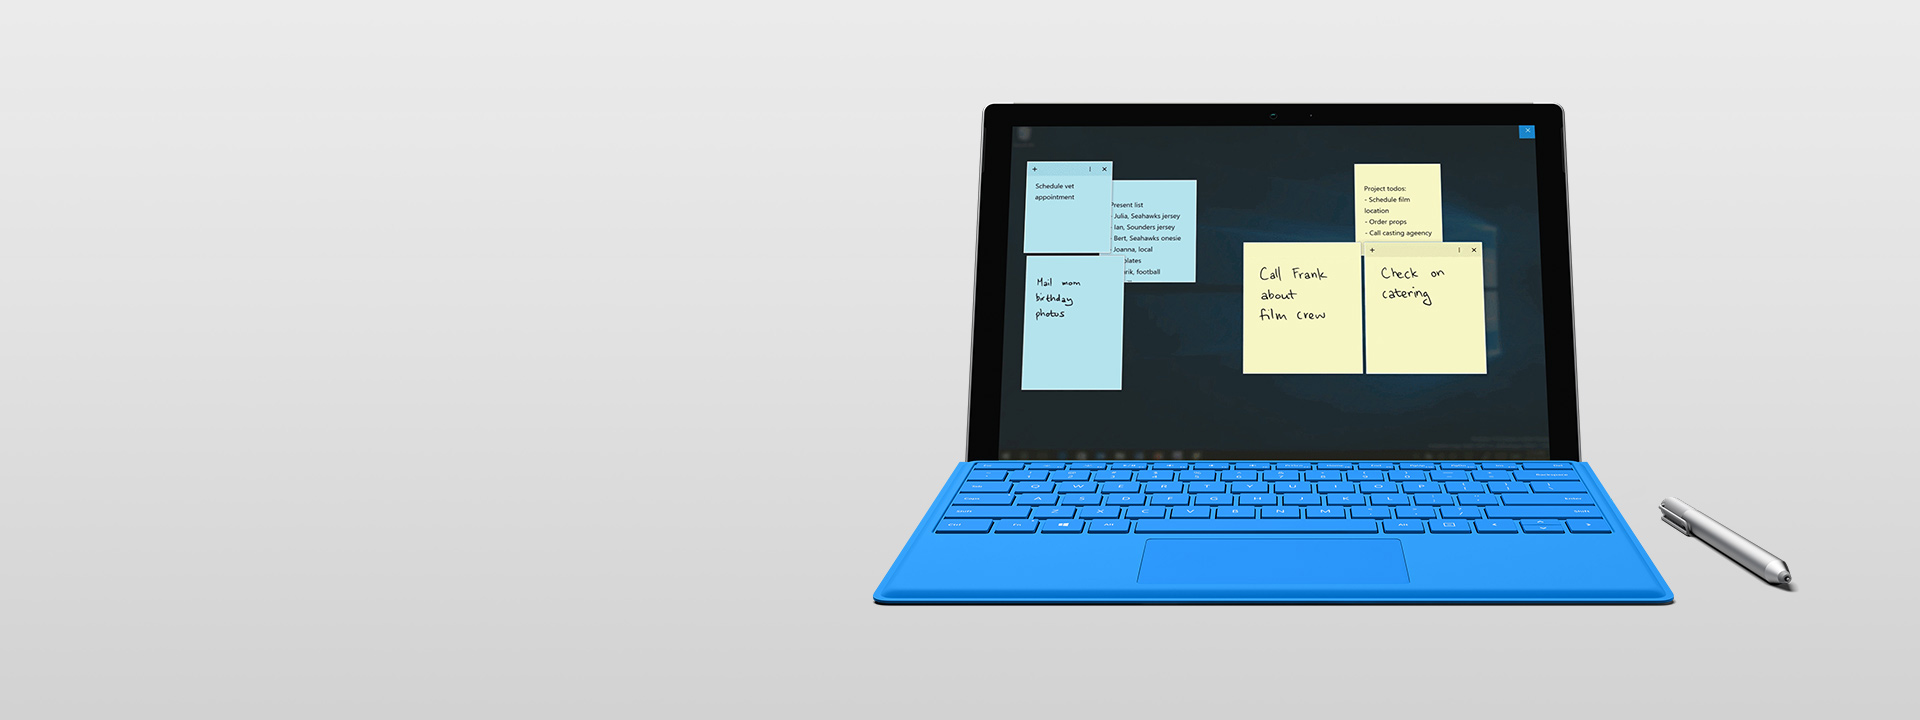 Surface Pro 4 with Sticky Notes